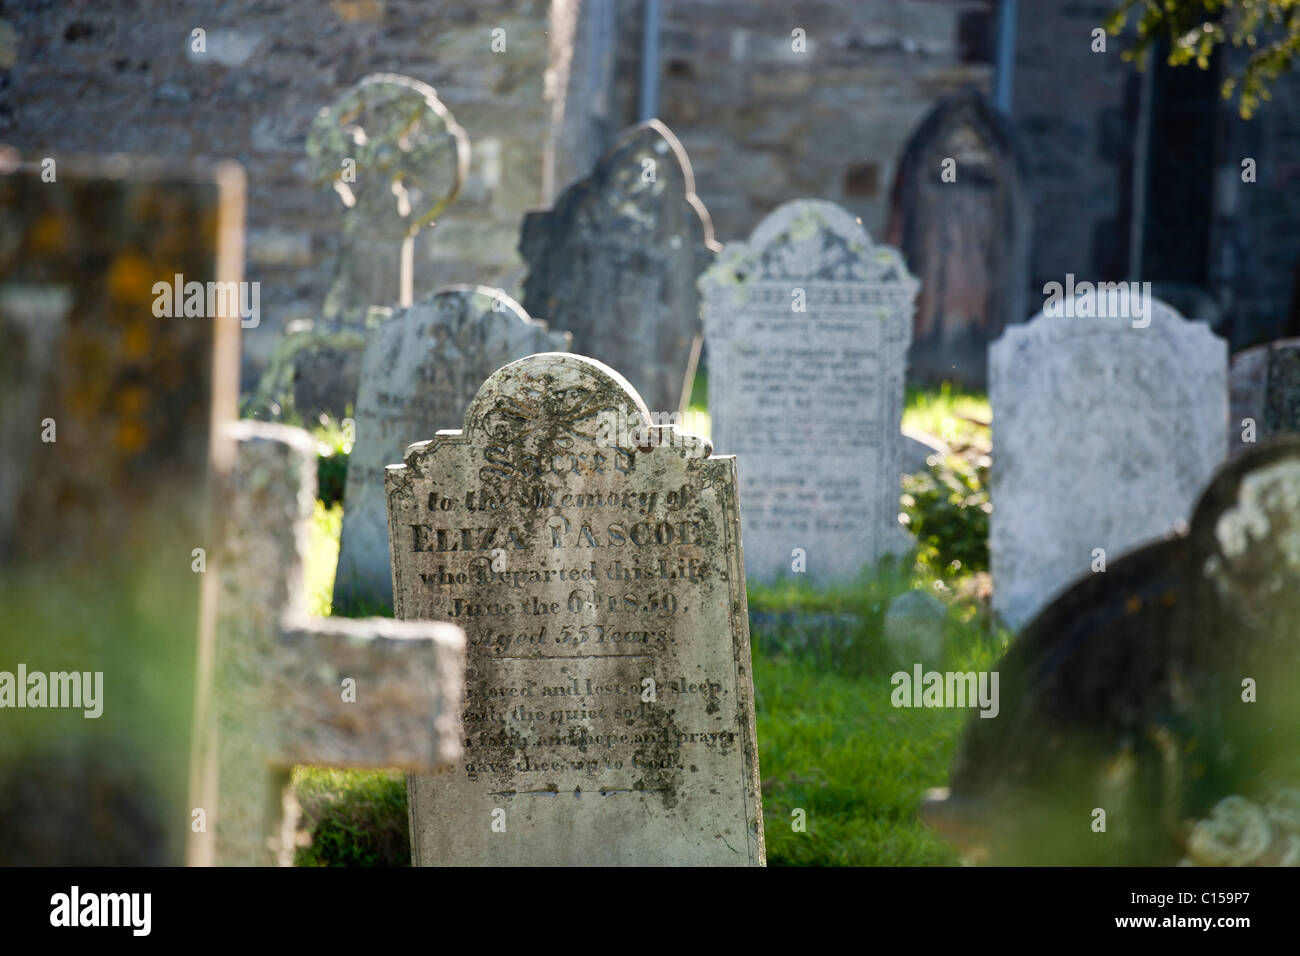 Old Mylor Graveyard. Stones scattered through the old graveyard at Mylor. Mylor, Cornwall, United Kingdom - Stock Image